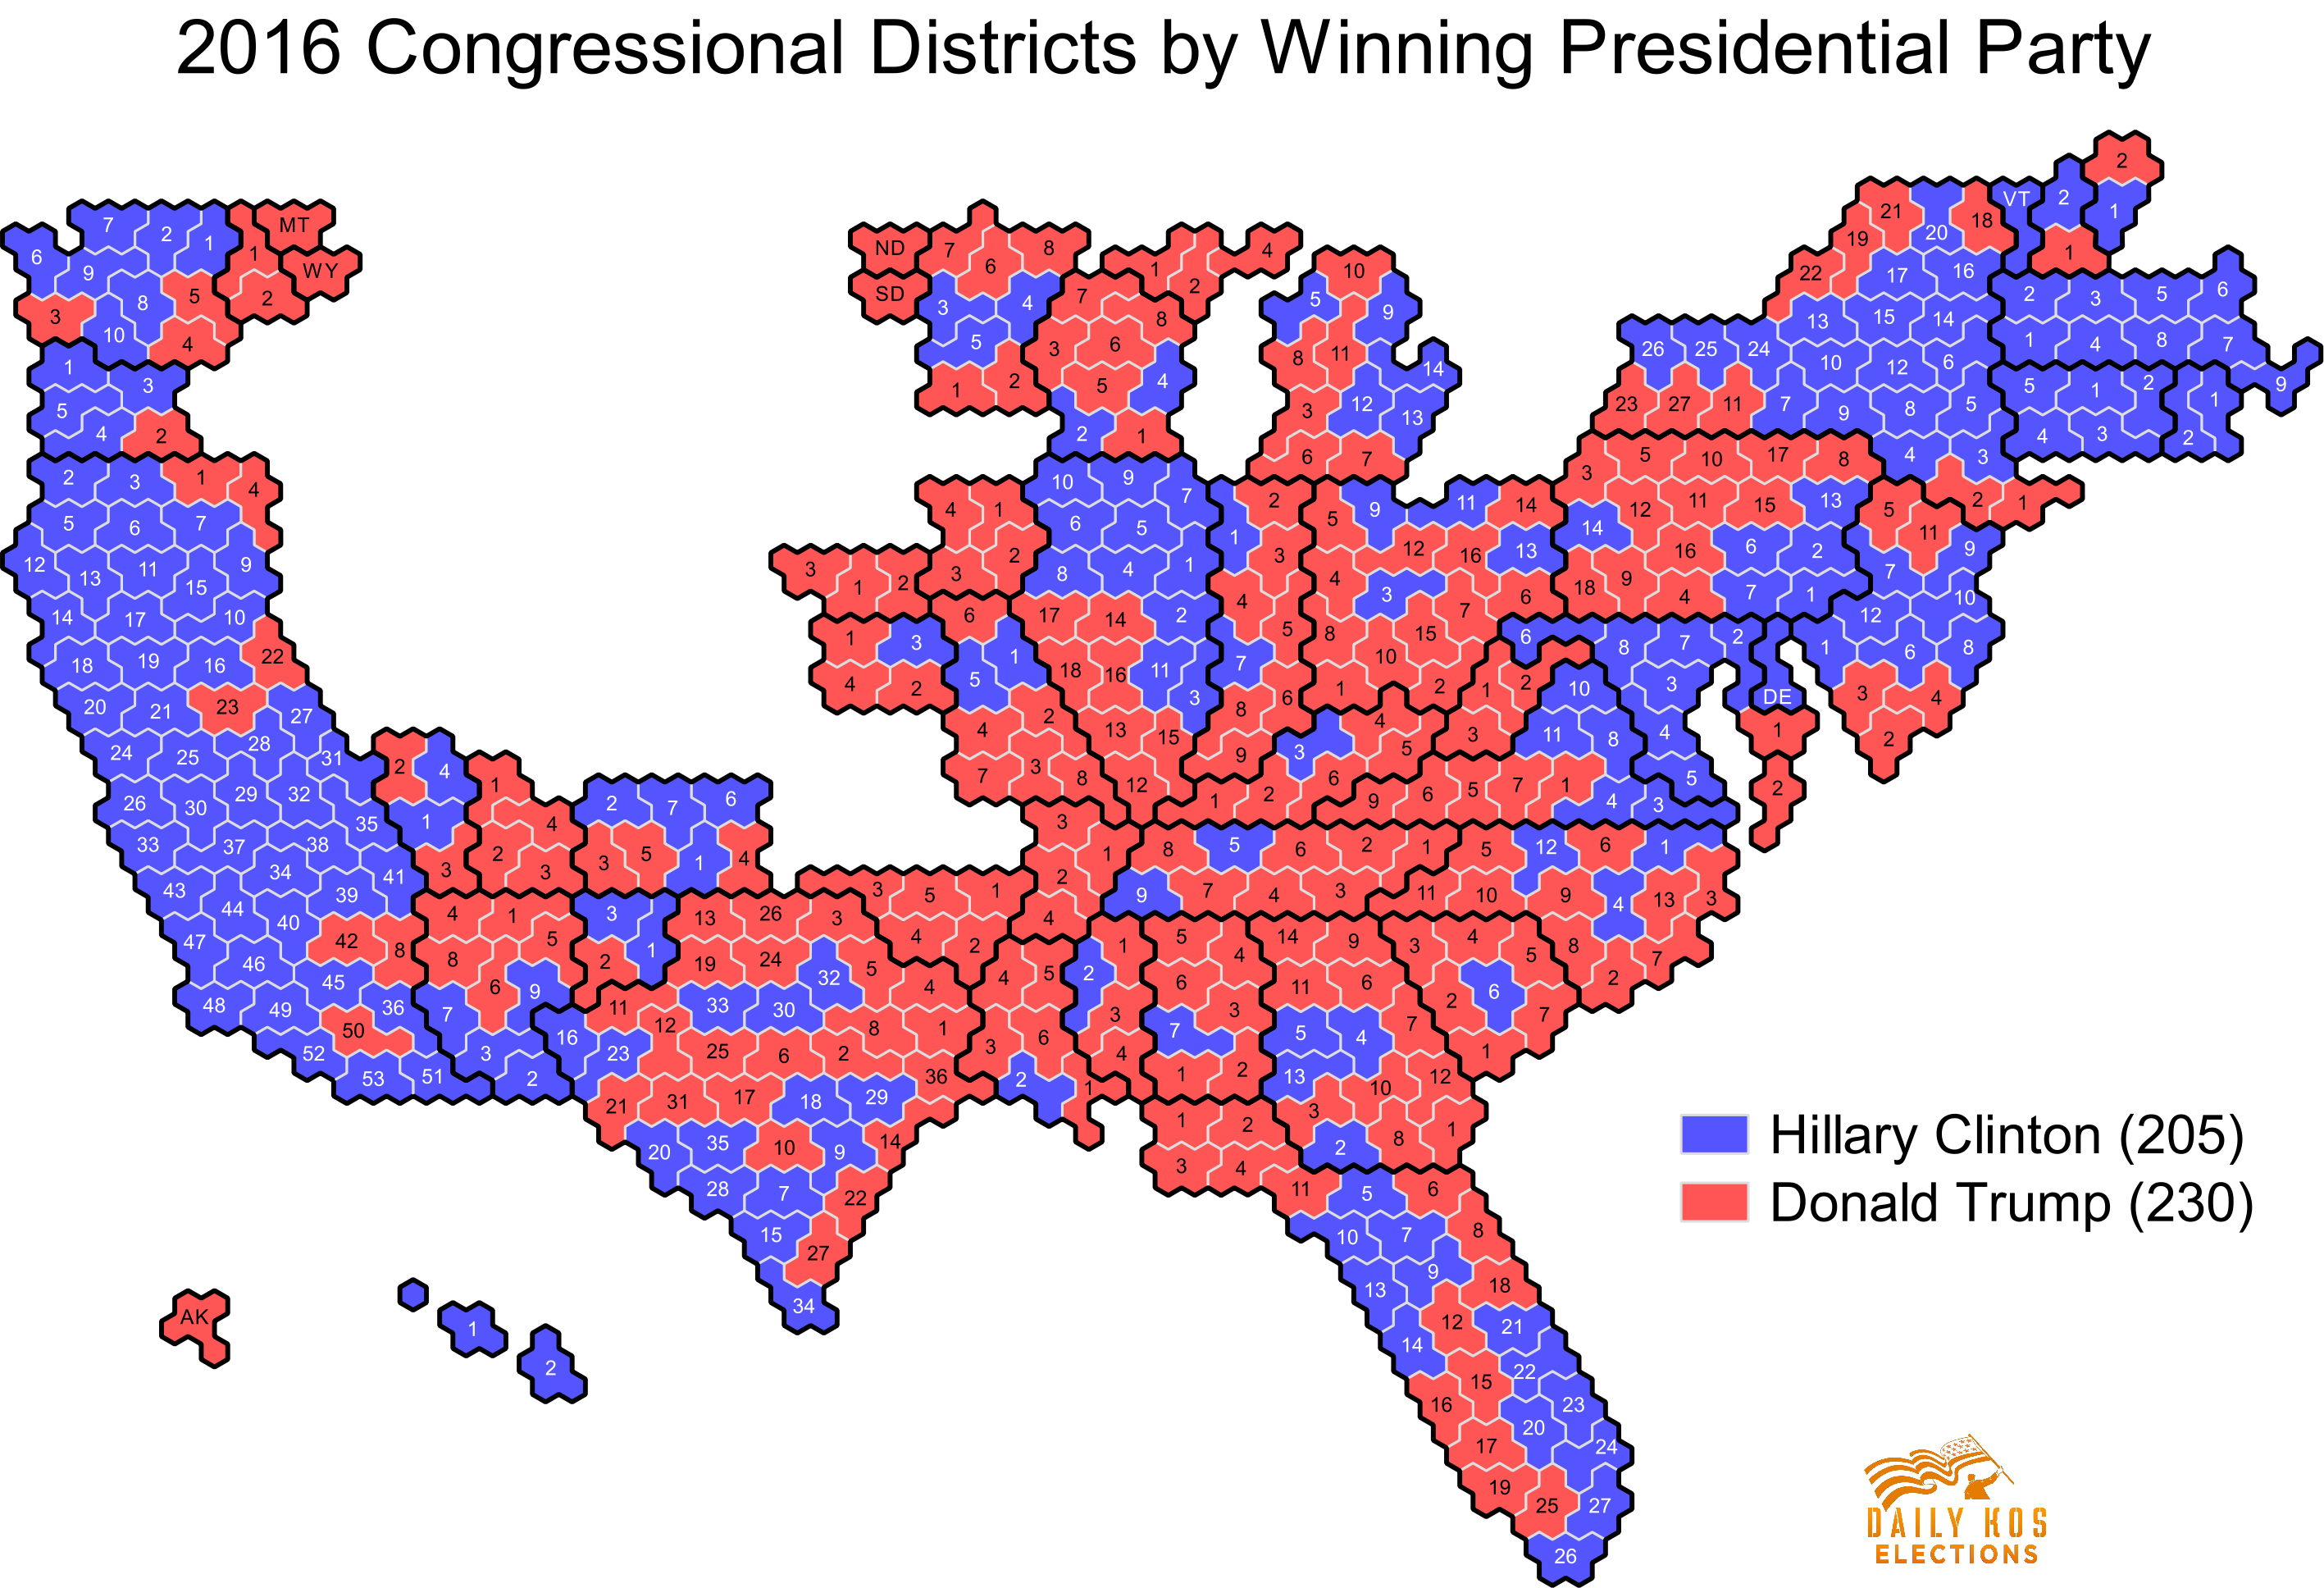 Daily Kos Elections presents the 2016 presidential election results ...